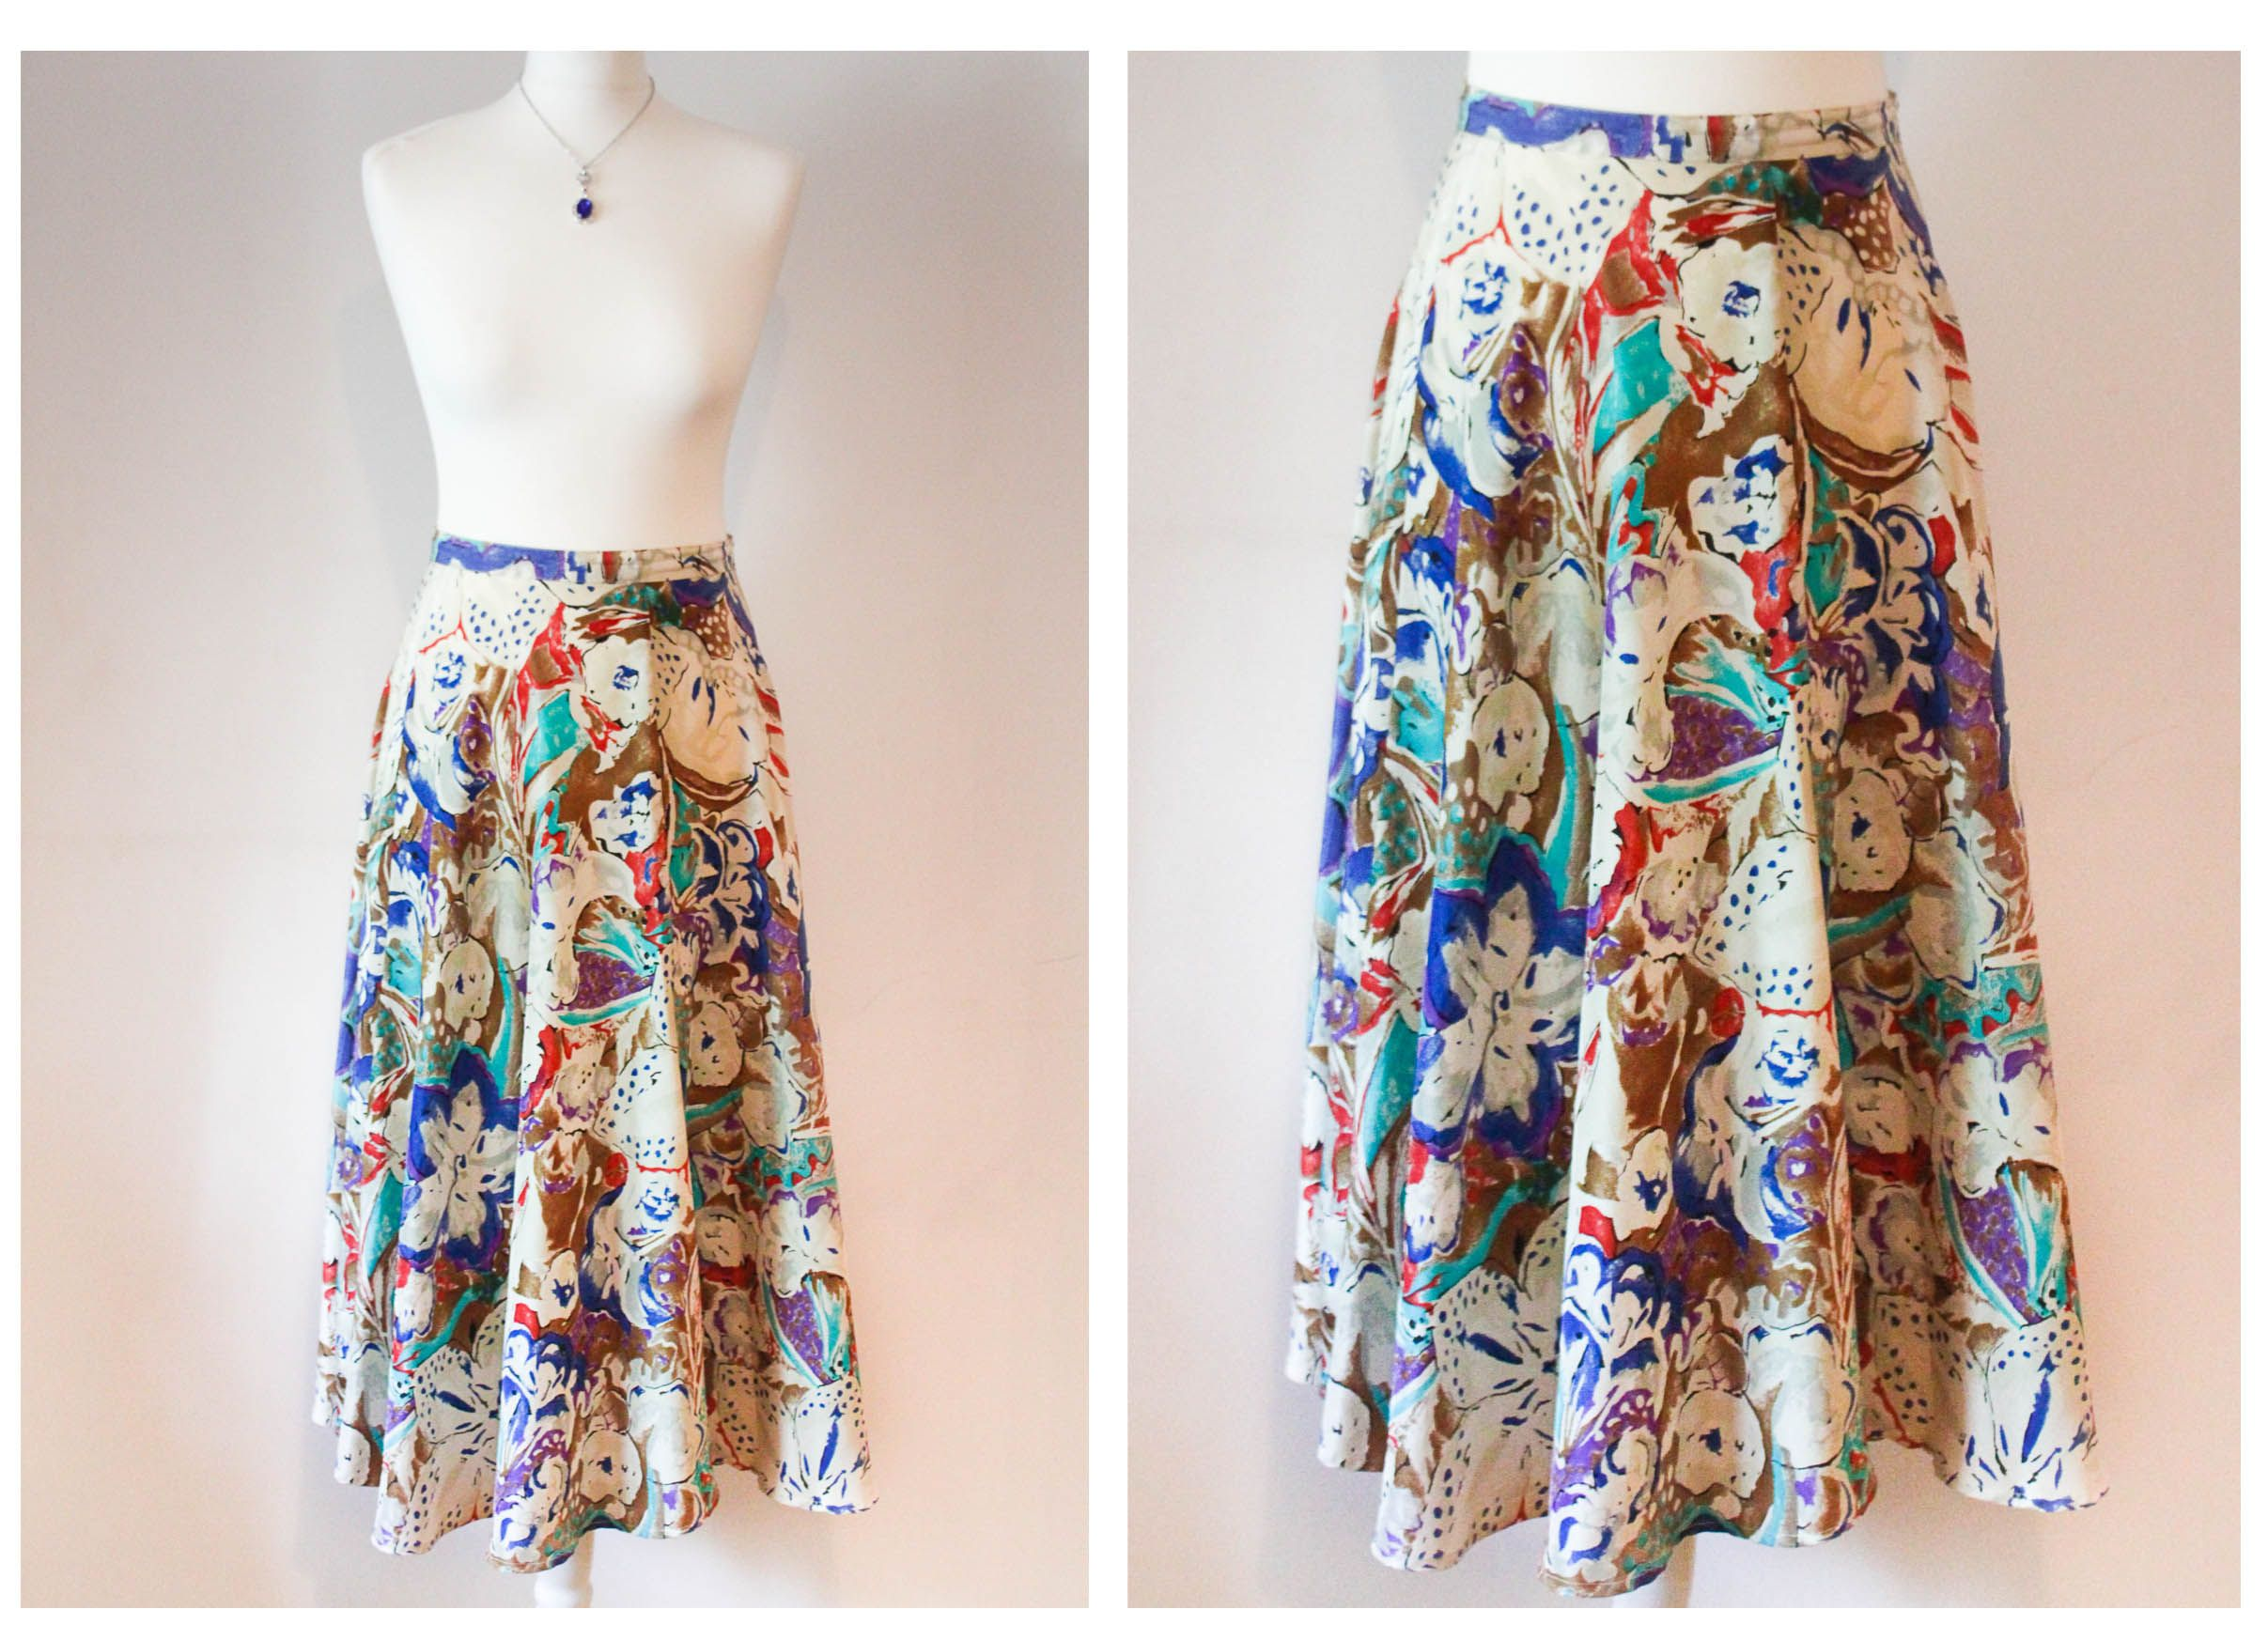 This is an eye-catching 100% silk skirt sourced directly from Rome, Italy.  Created in the 70's, this stunning vintage piece features a colourful, artistic design printed on soft silk fabric. Kept in excellent condition, this skirt also has a metal rear zipper/button closure. Italian vintage at its finest! https://www.etsy.com/listing/203246818/italian-vintage-silk-skirt